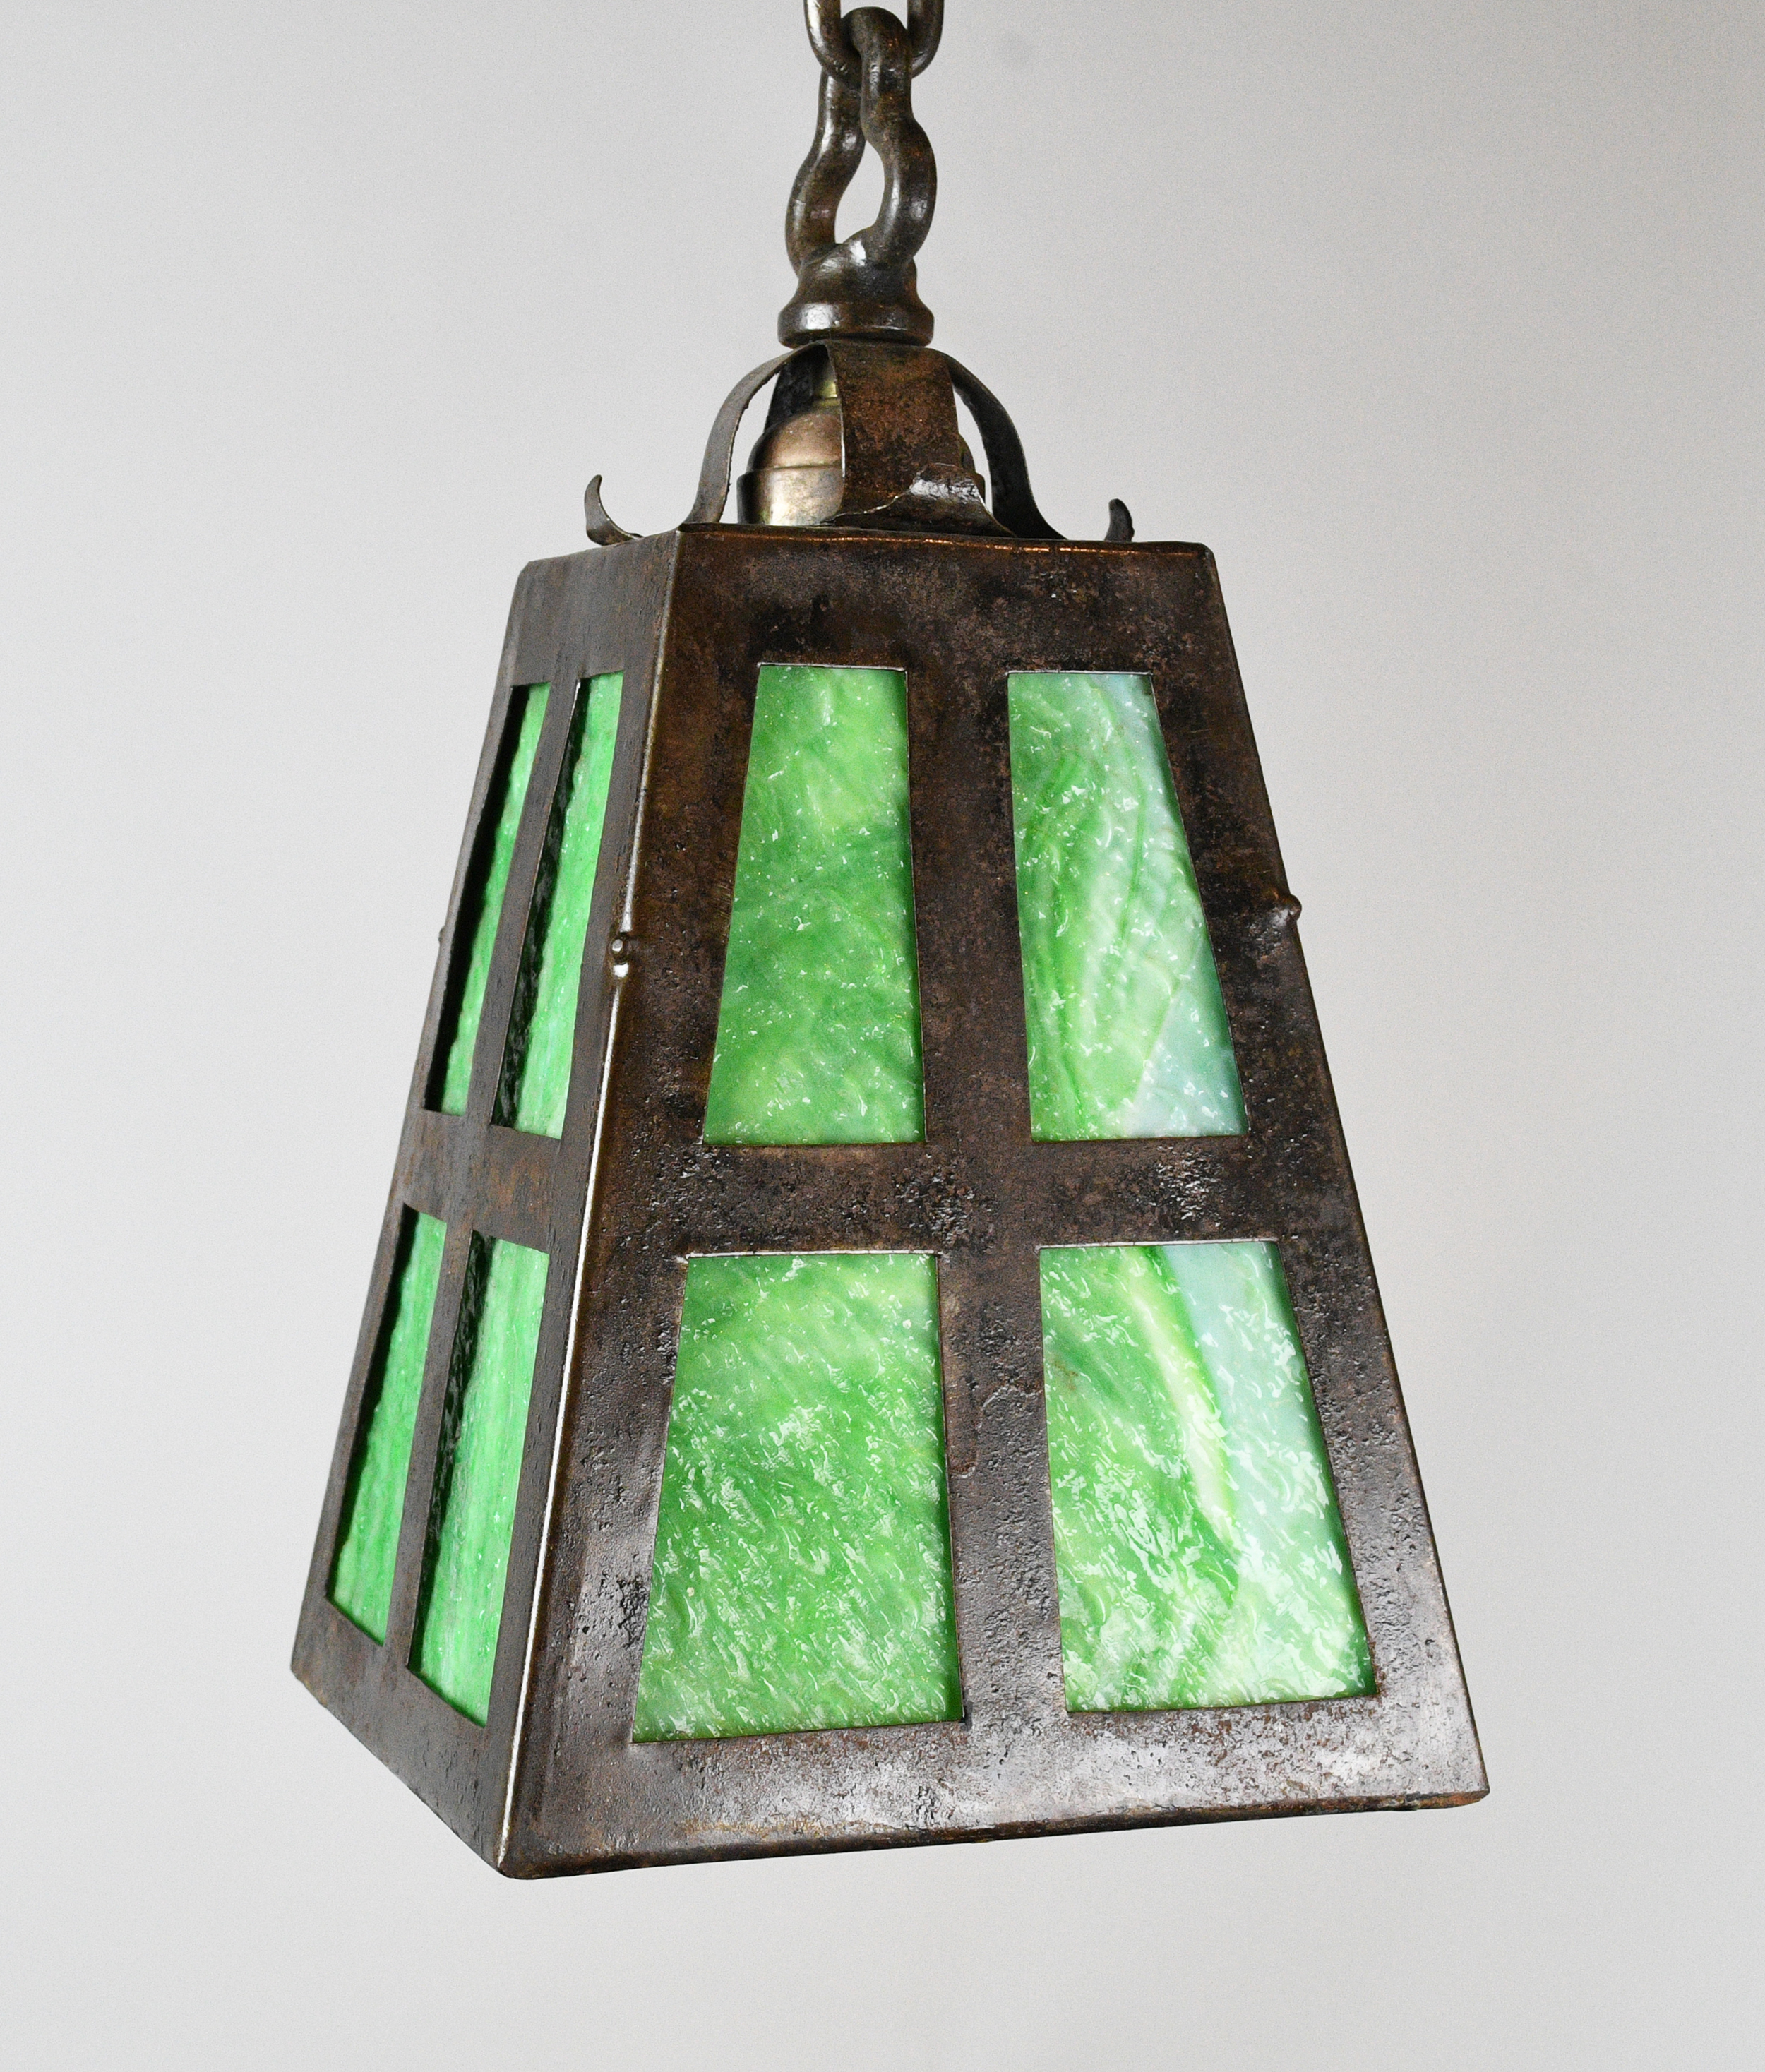 47738-iron-A-and-C-pendant-with-slag-glass-3.jpg